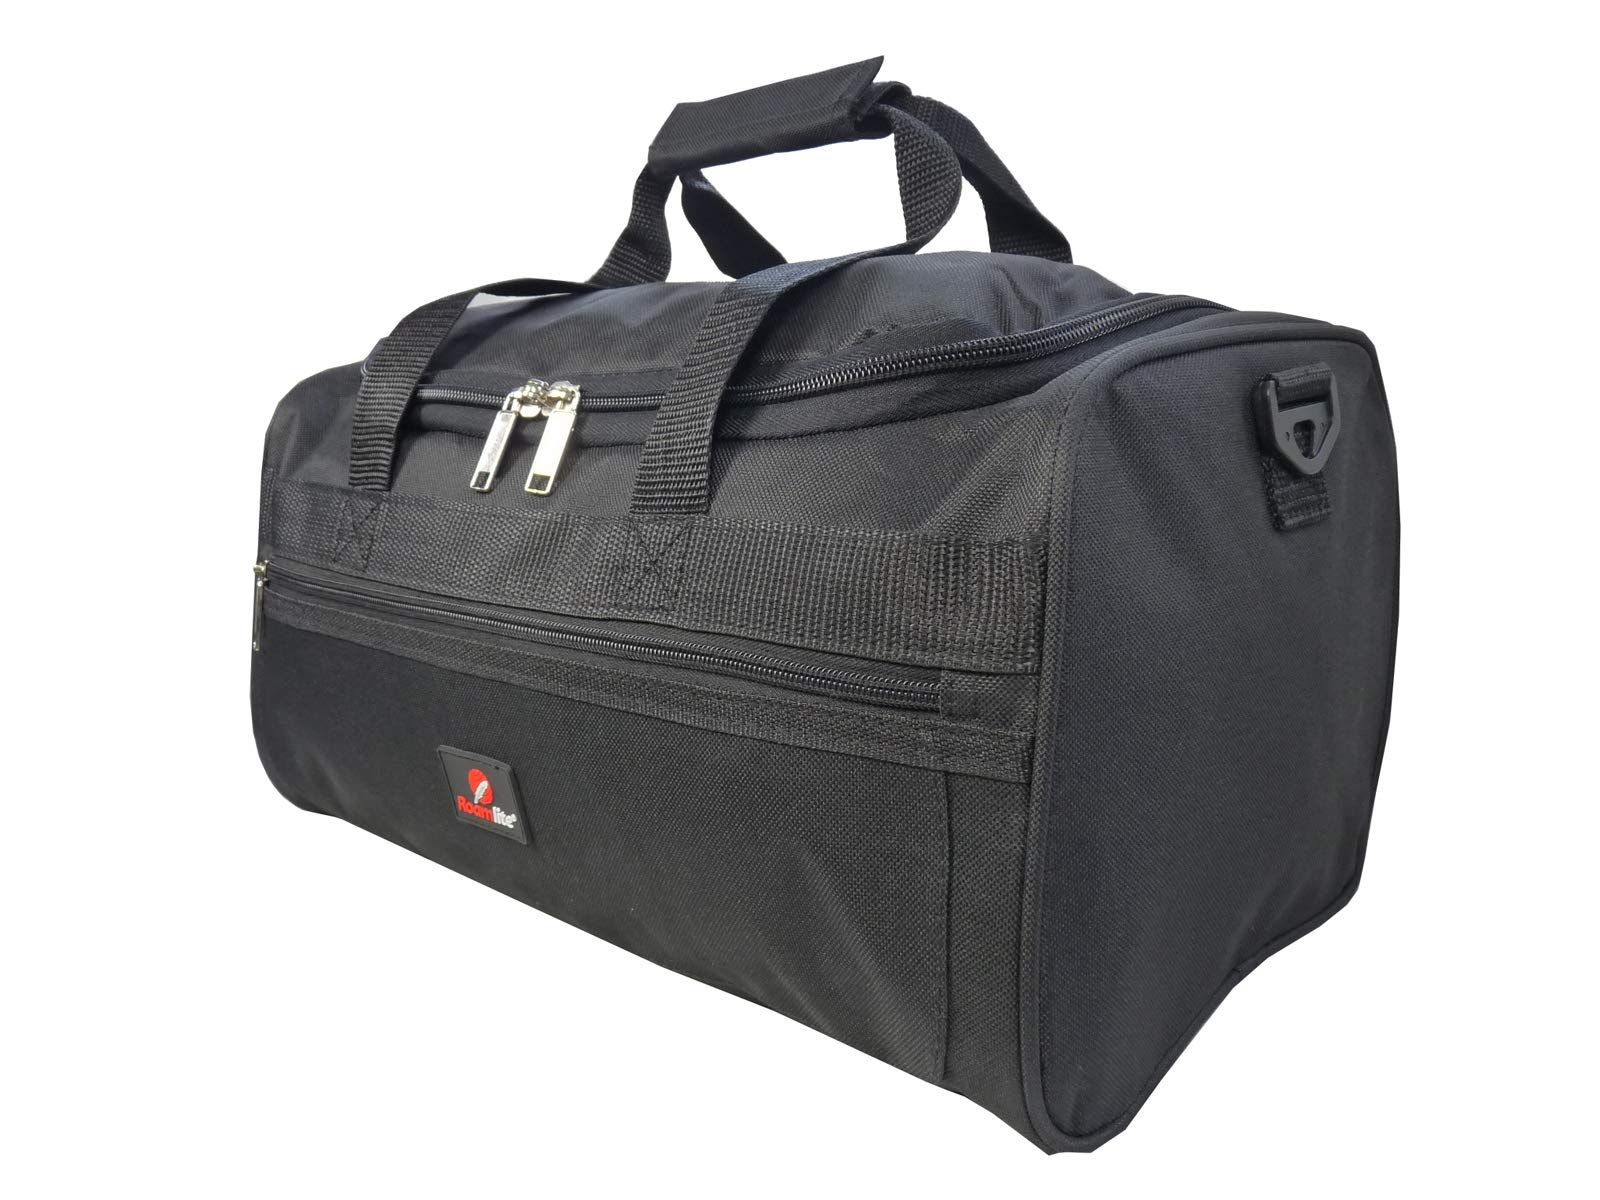 562650550f1 Roamlite Small Hand Luggage Holdalls - Ryanair 2nd Item Size Travel Bags -  Polyester 40 x25x20